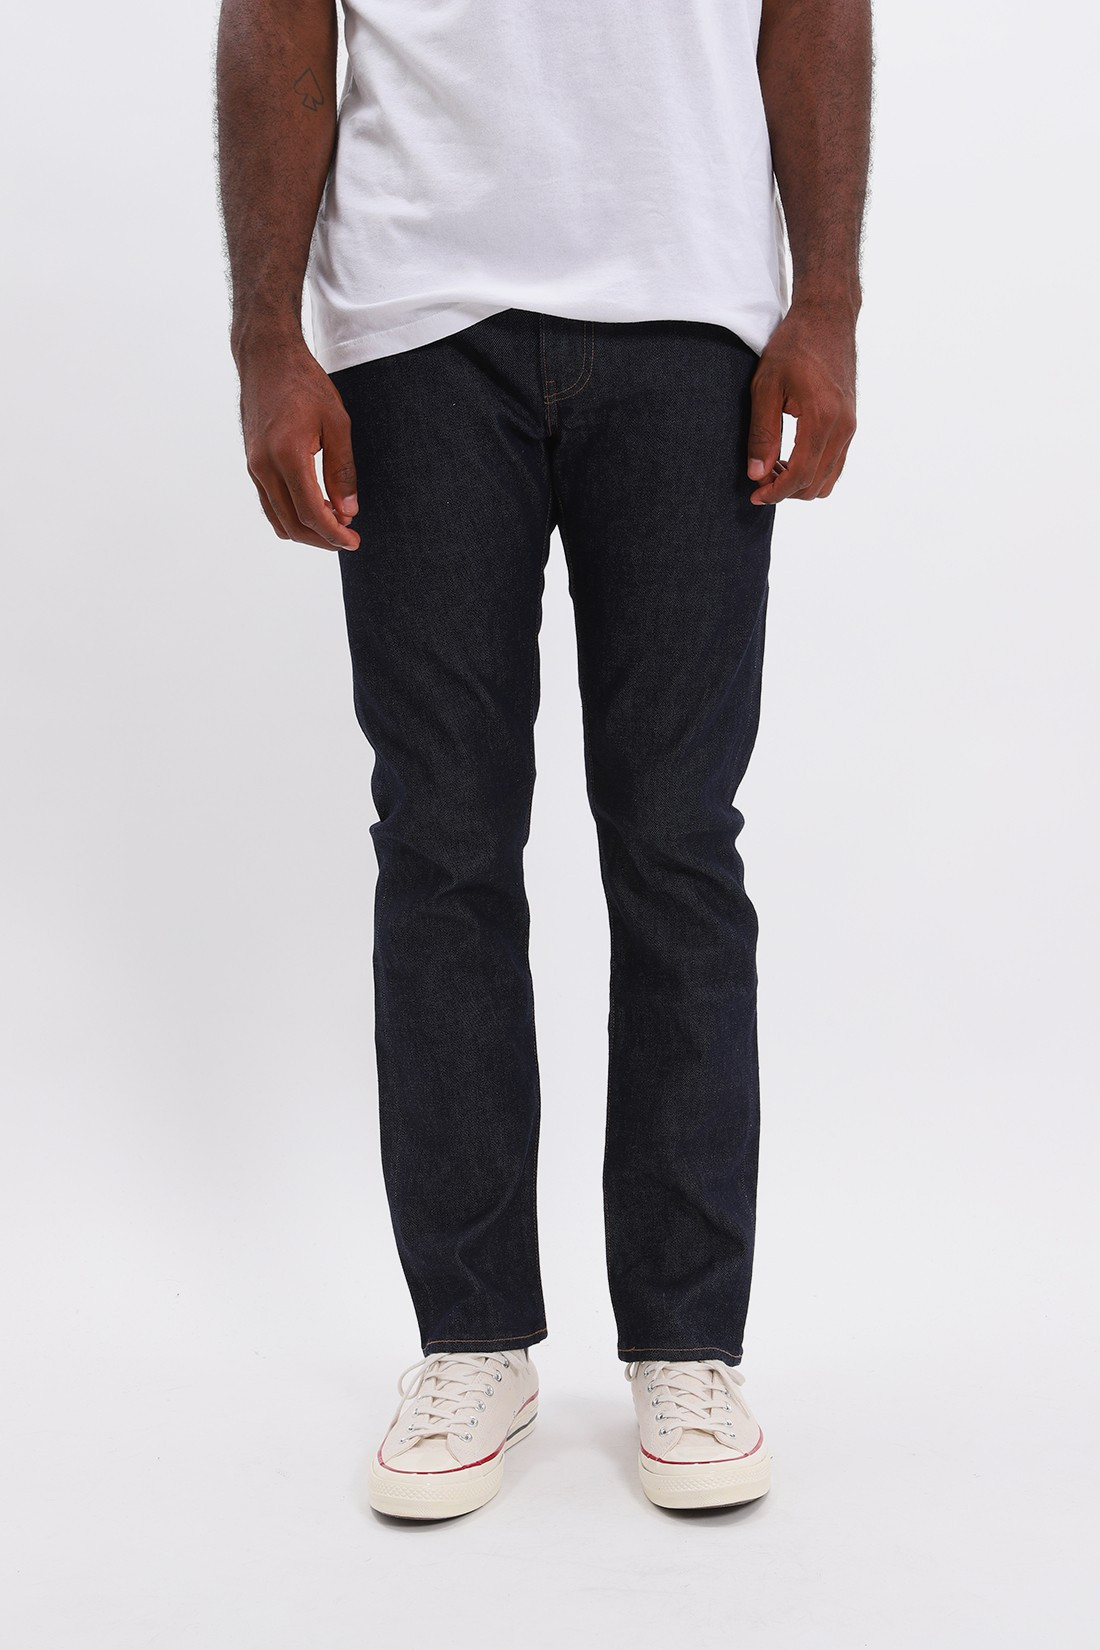 LEVIS MADE CRAFTED / Lmc 511 resin rinsed denim Resin rinsed